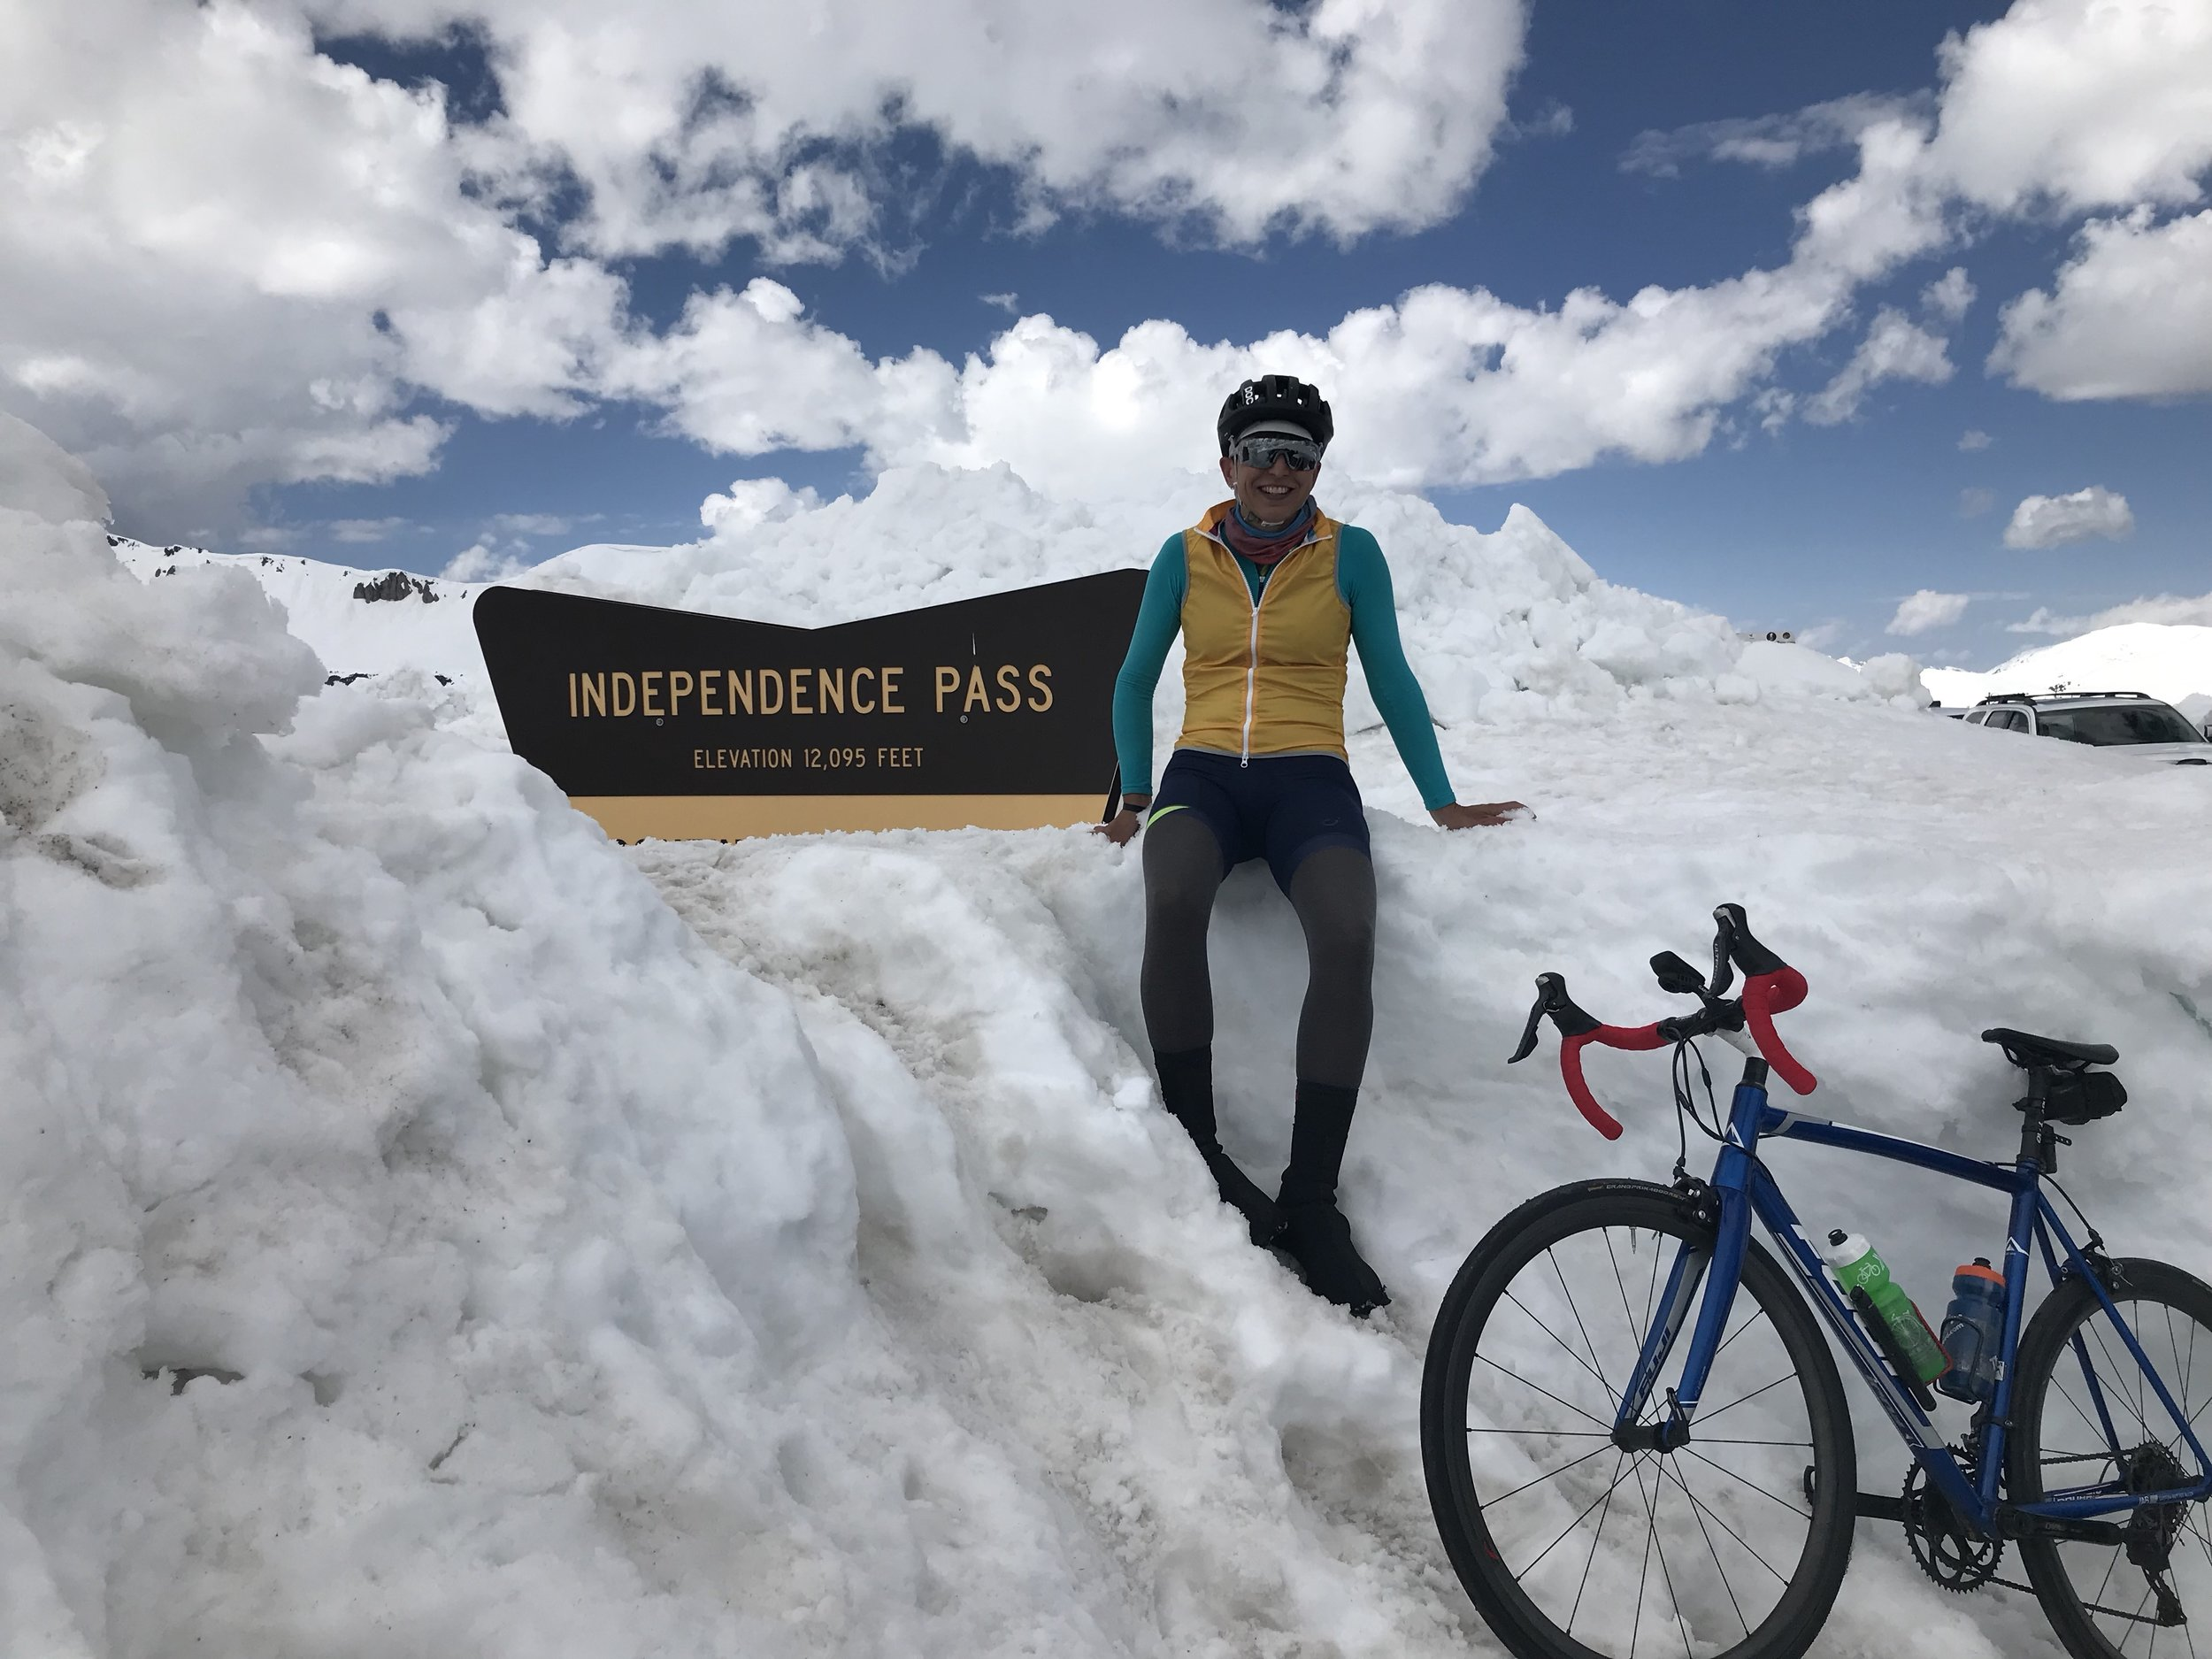 Independence Pass — First day open for the season